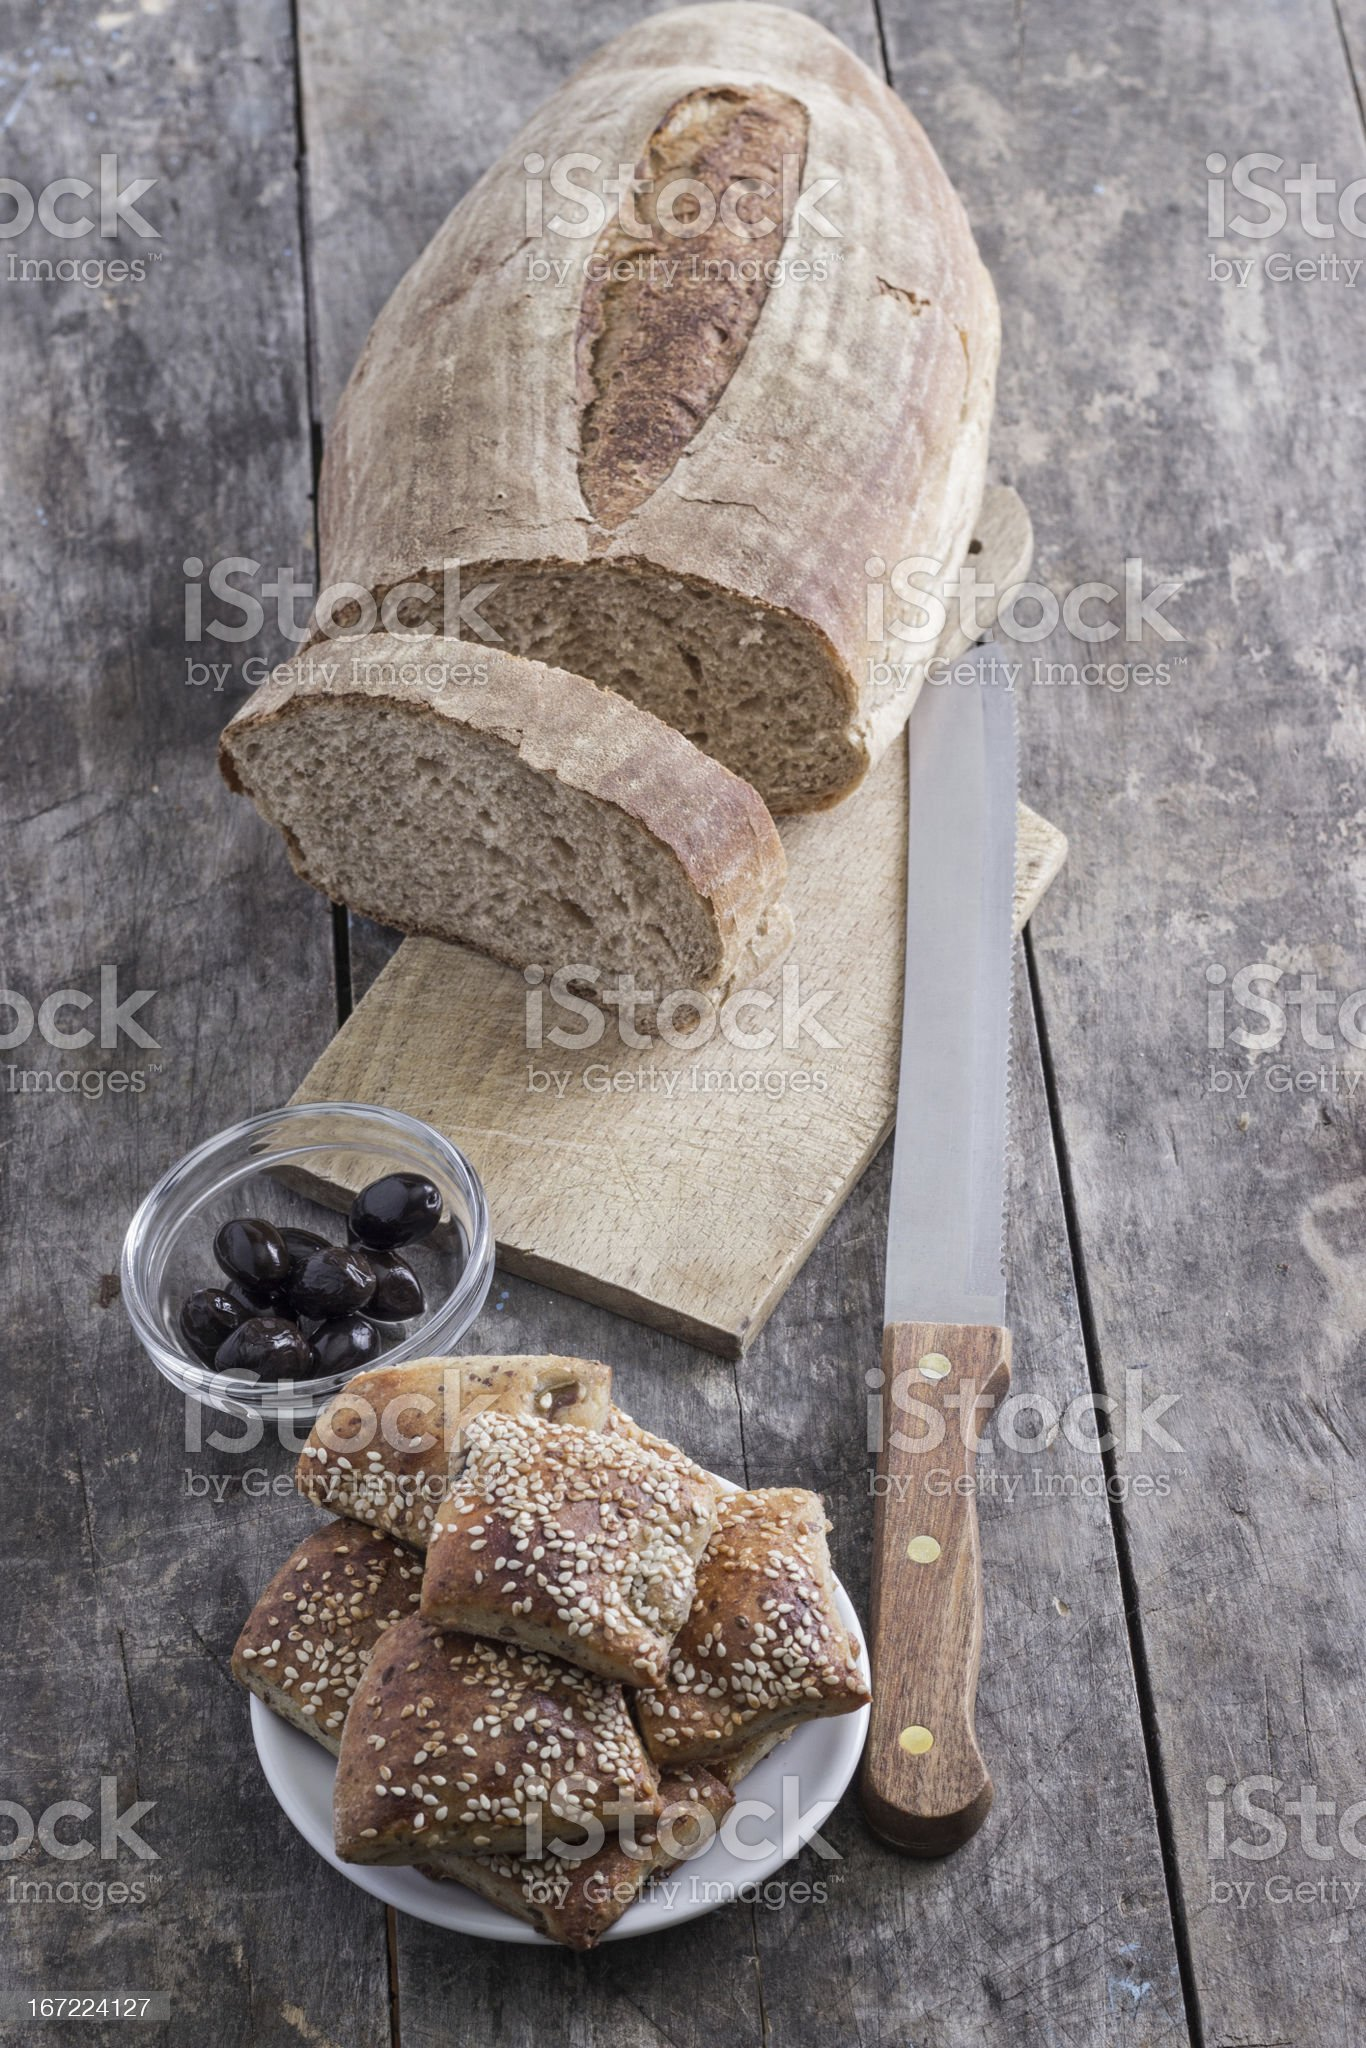 homemade bread and scones with olives royalty-free stock photo